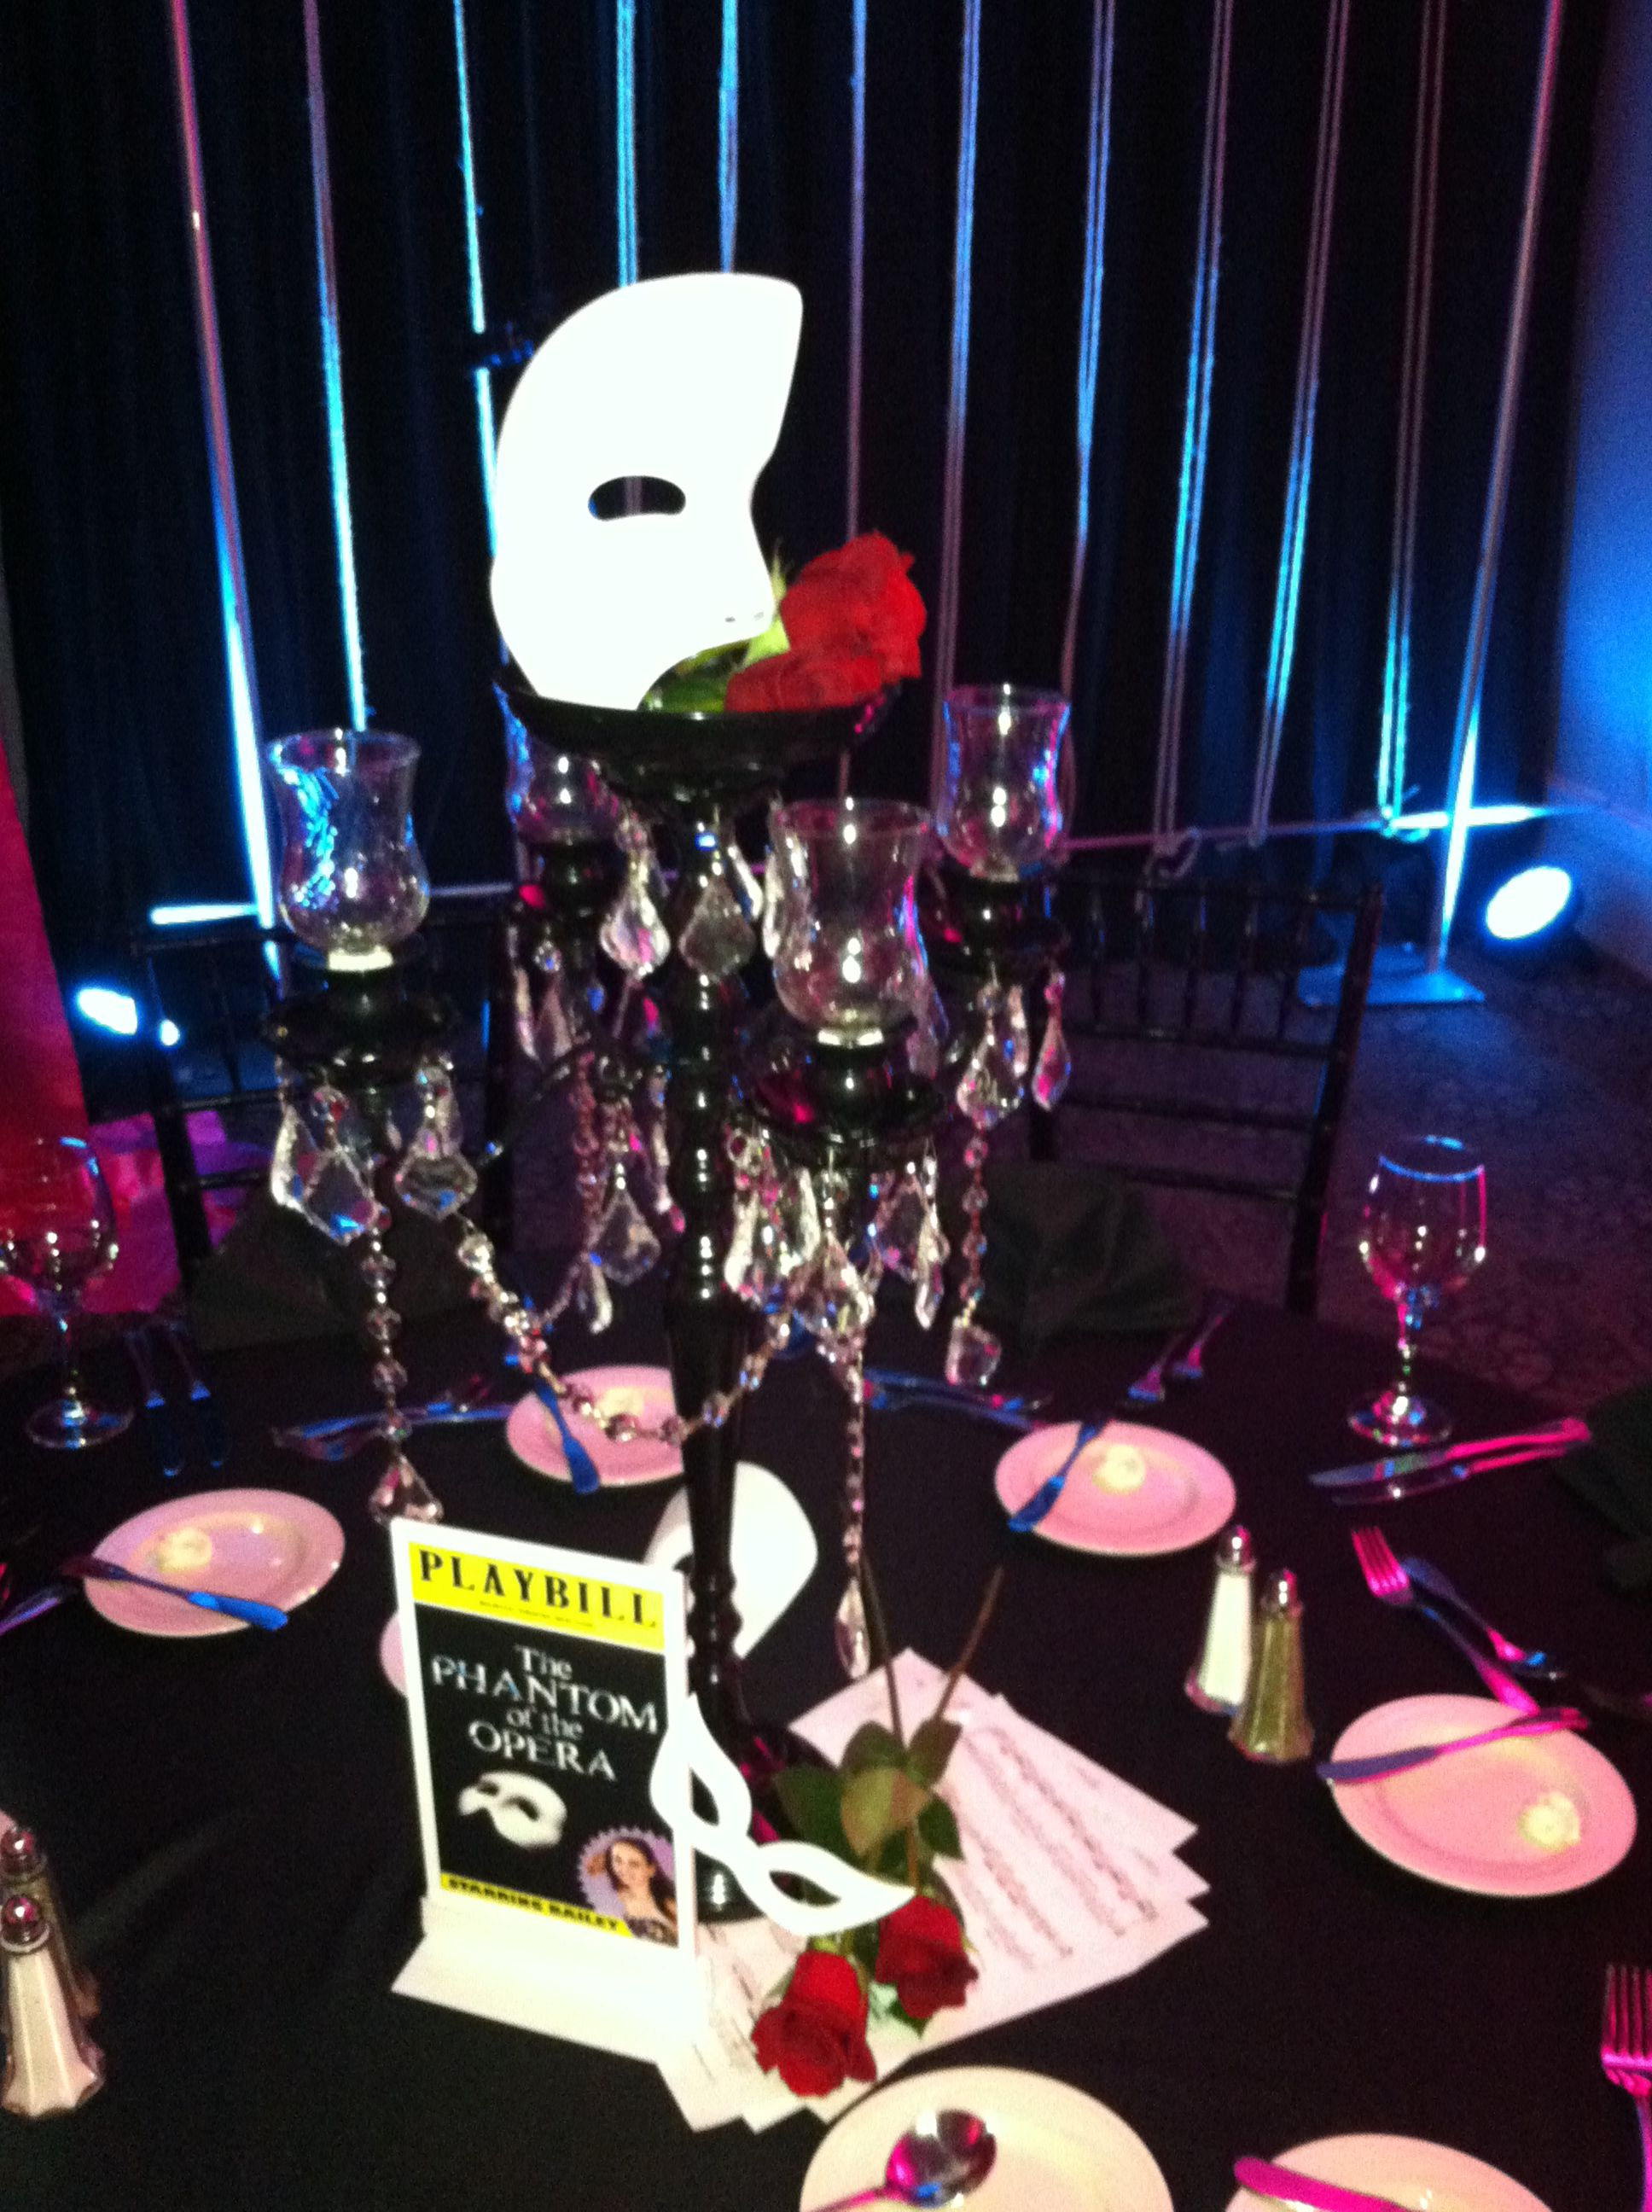 Phantom of the Opera Centerpiece    www.theeventscompany.com